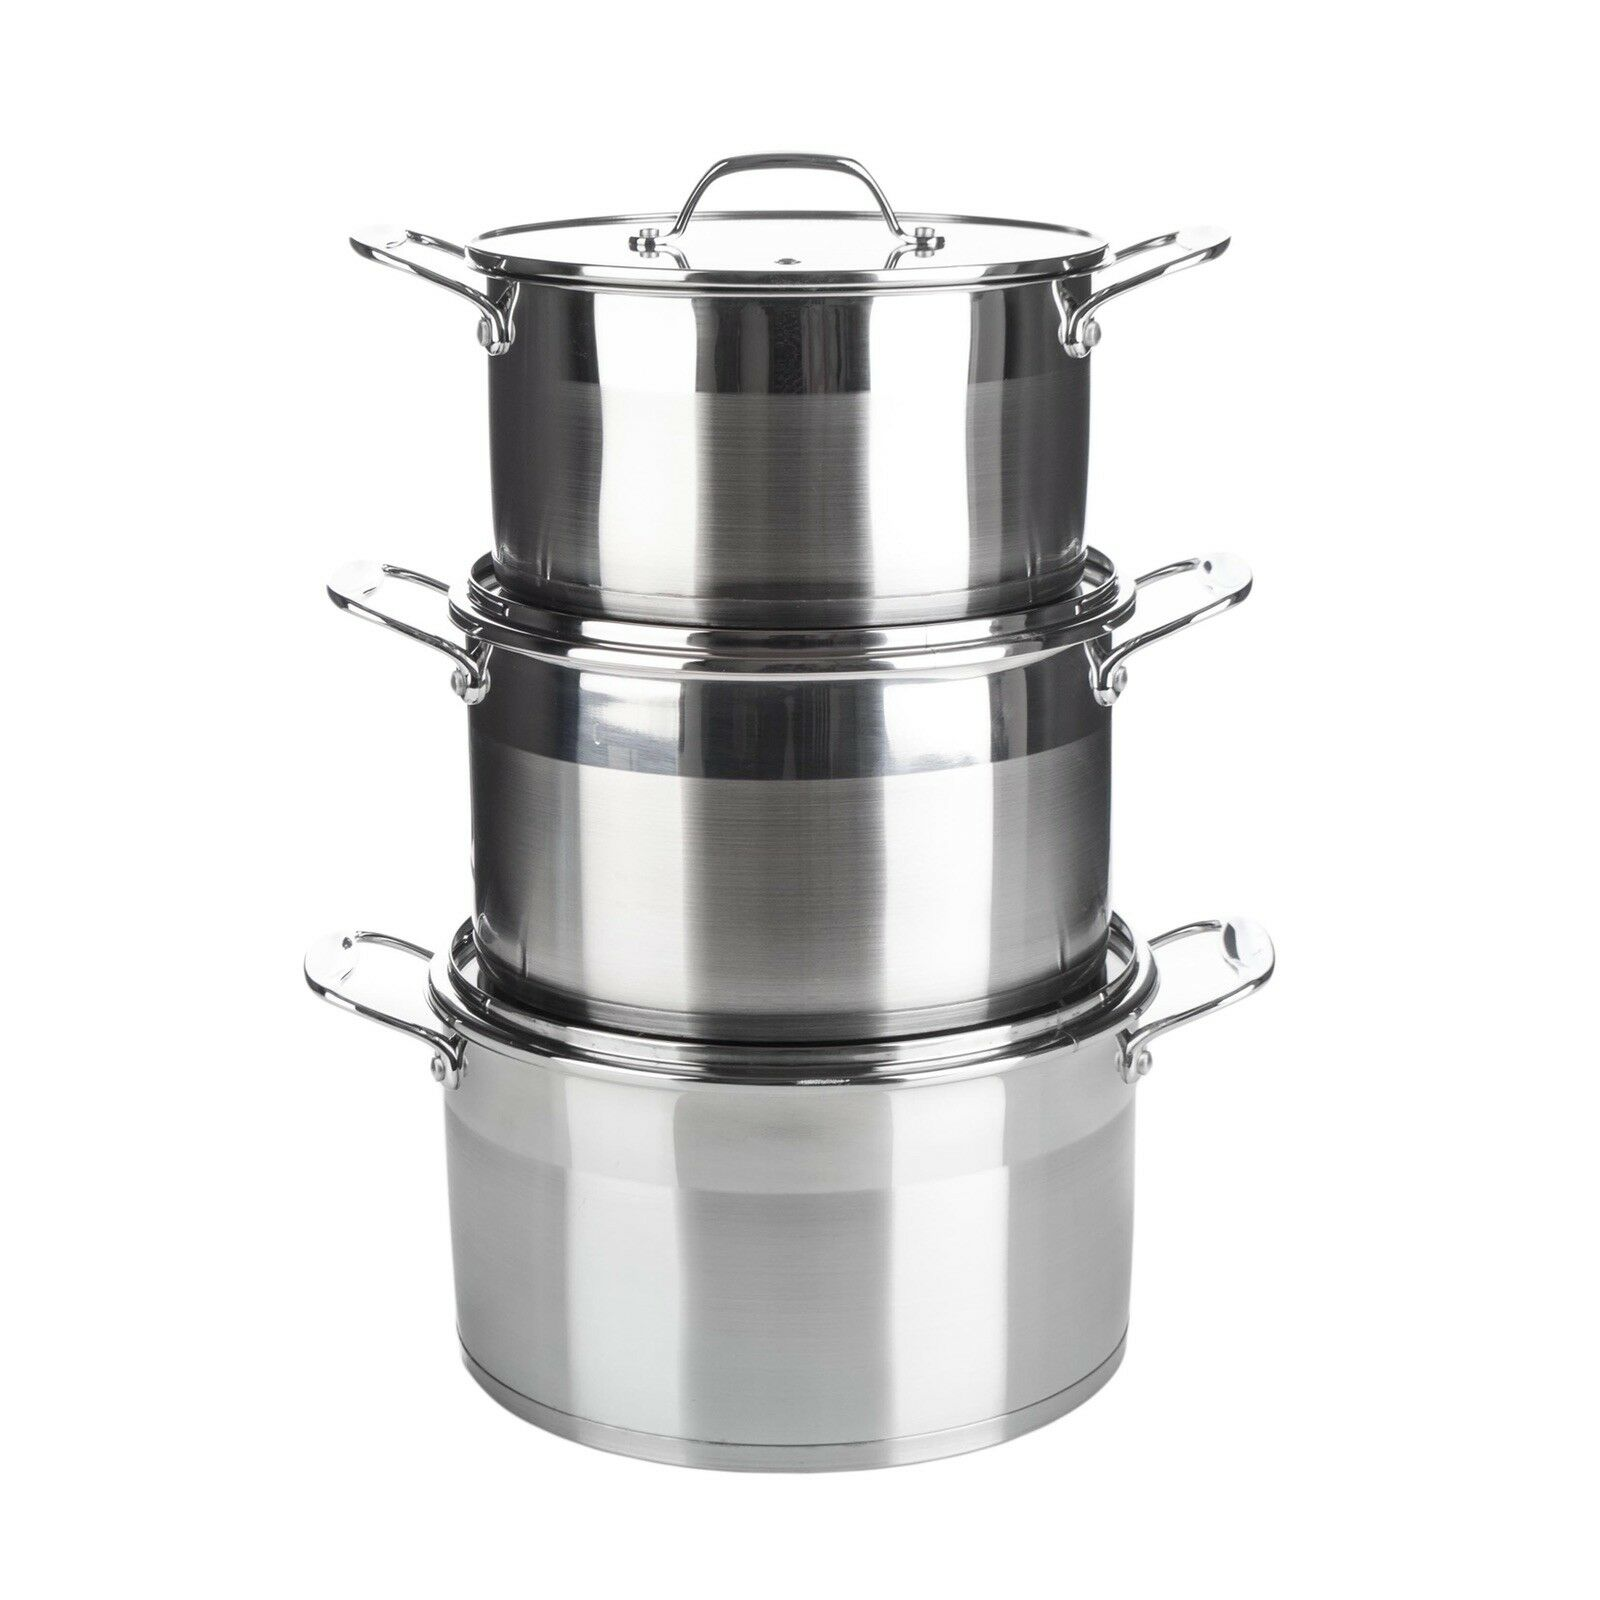 Original Royal Cuisine Pot en acier inoxydable Set 3 Pc 24,26,28cm induction prêt